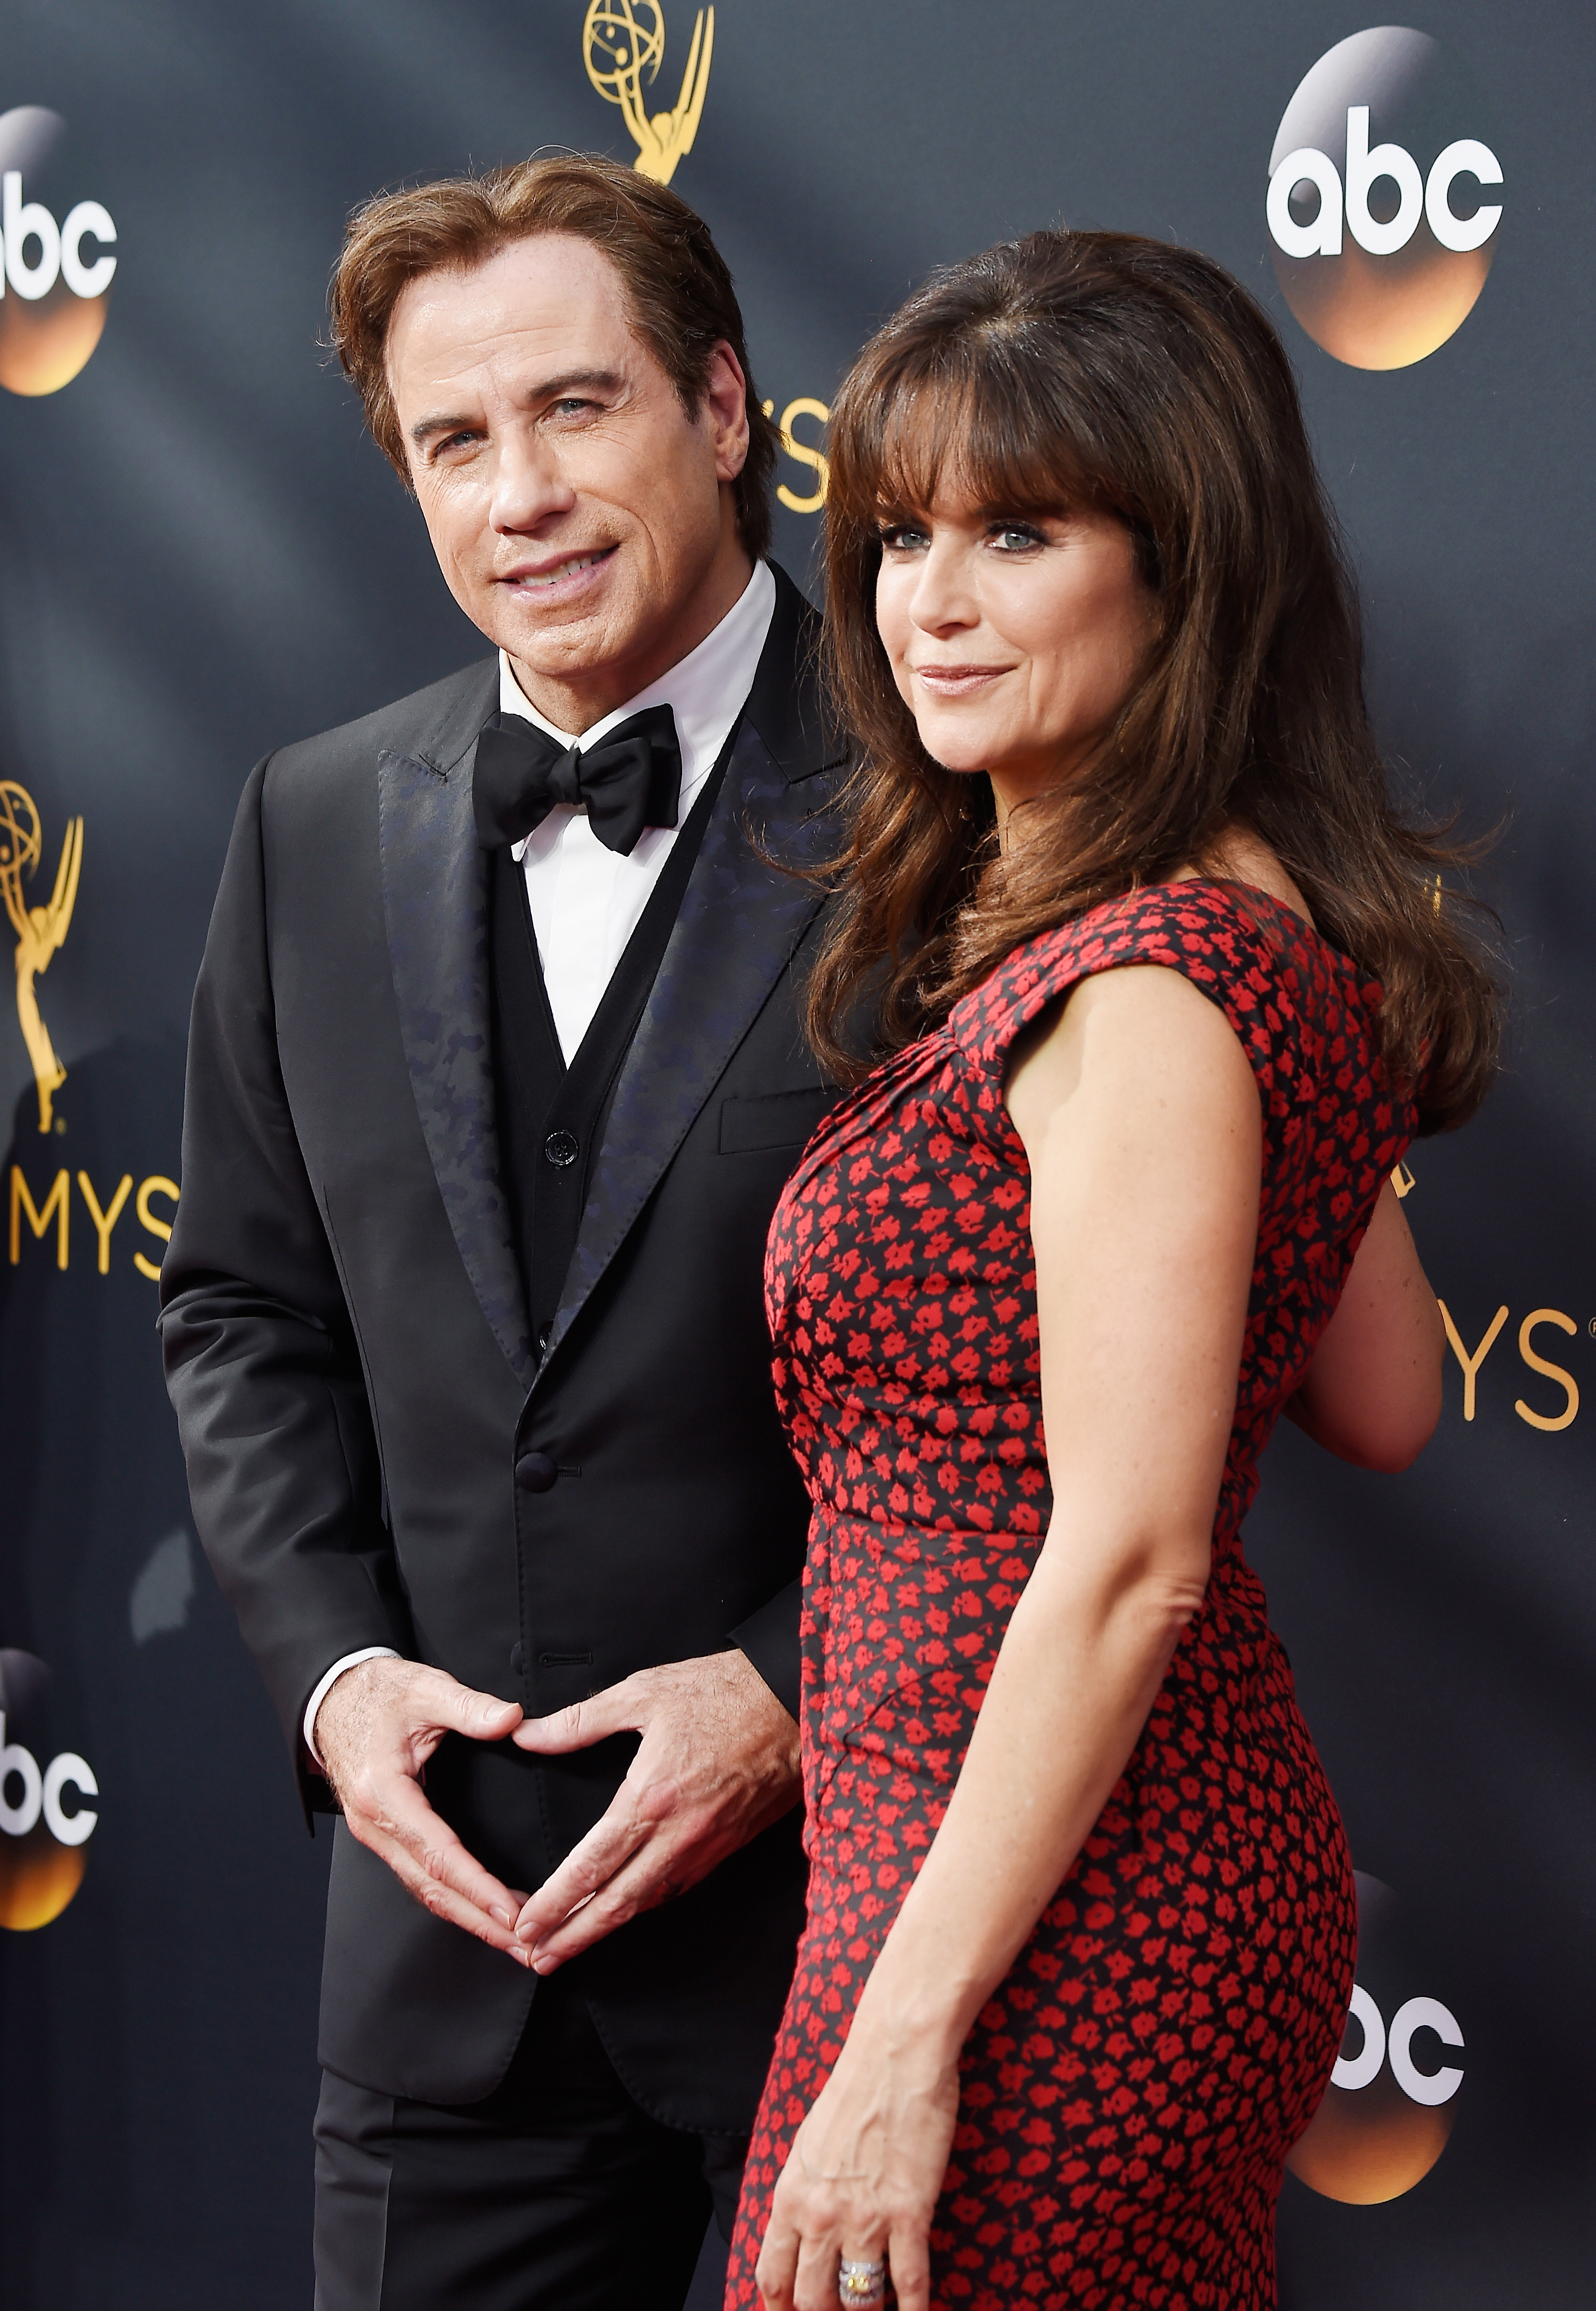 LOS ANGELES, CA - SEPTEMBER 18: Actors John Travolta and Kelly Preston attend the 68th Annual Primetime Emmy Awards at Microsoft Theater on September 18, 2016 in Los Angeles, California. (Photo by Frazer Harrison/Getty Images)